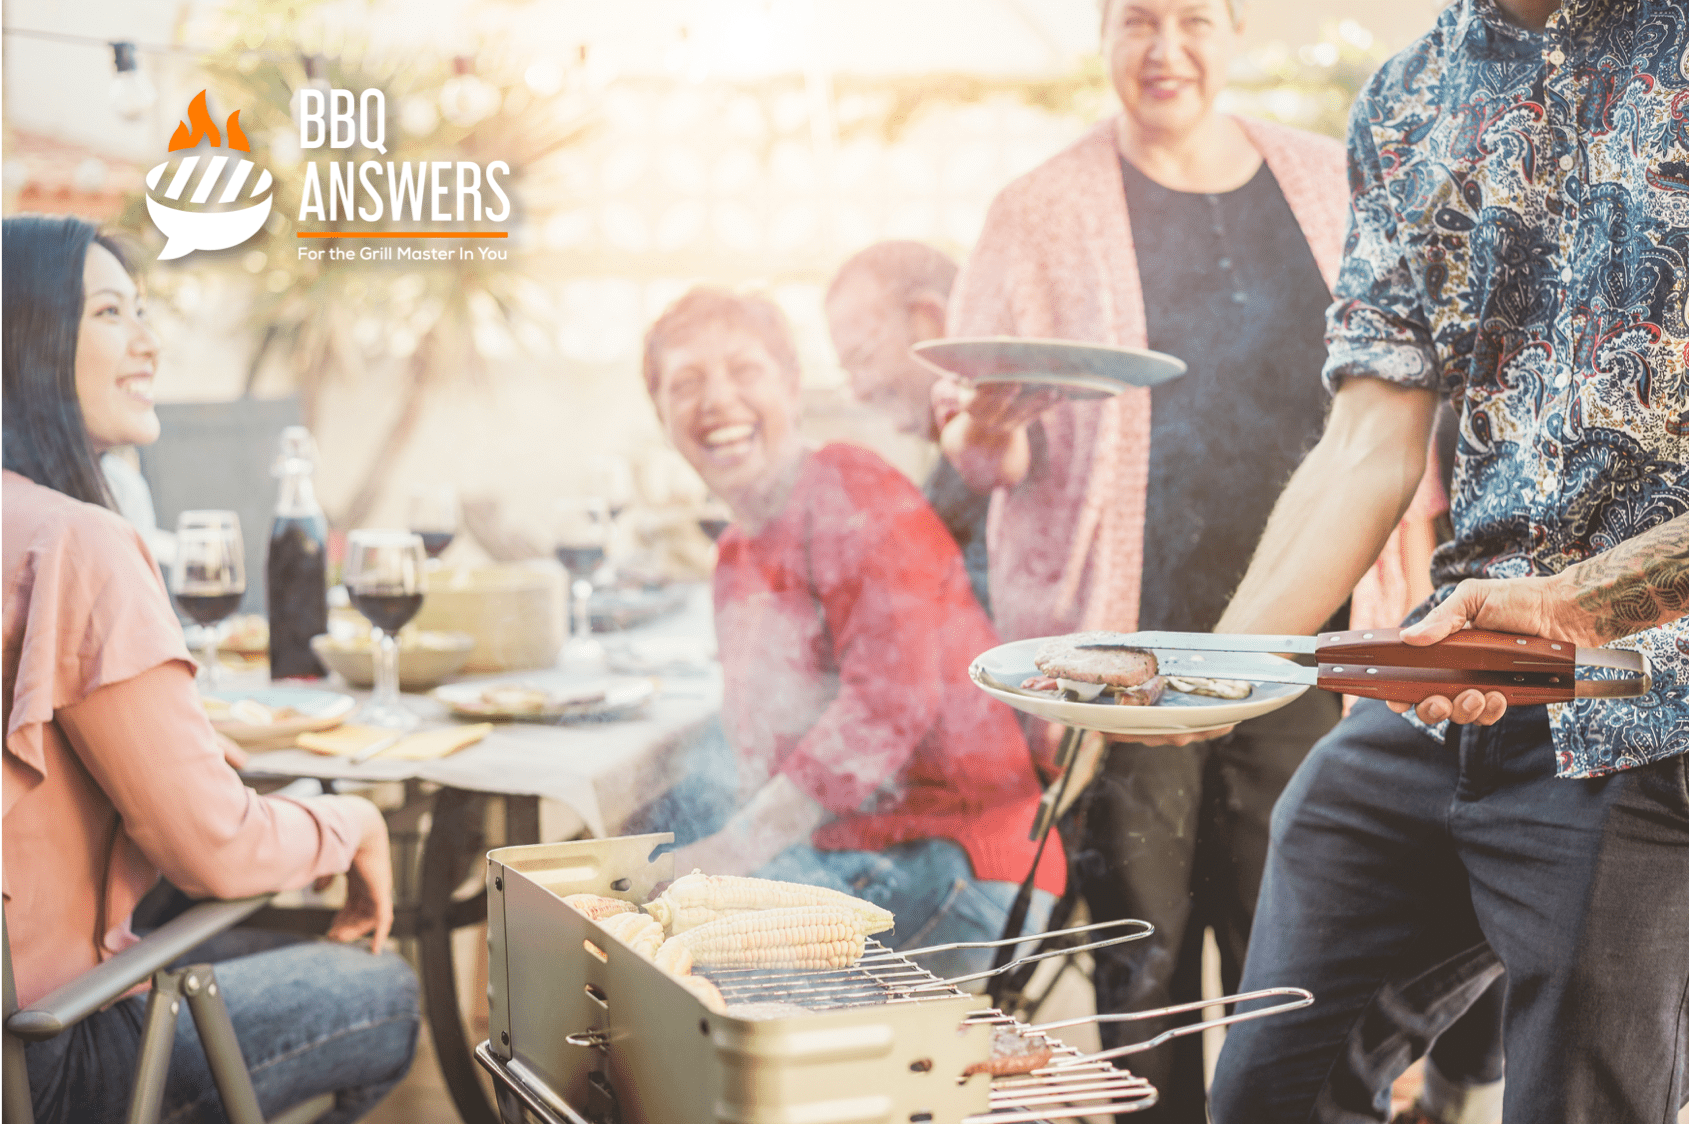 Southern BBQ   Everything You Need to Know   BBQanswers